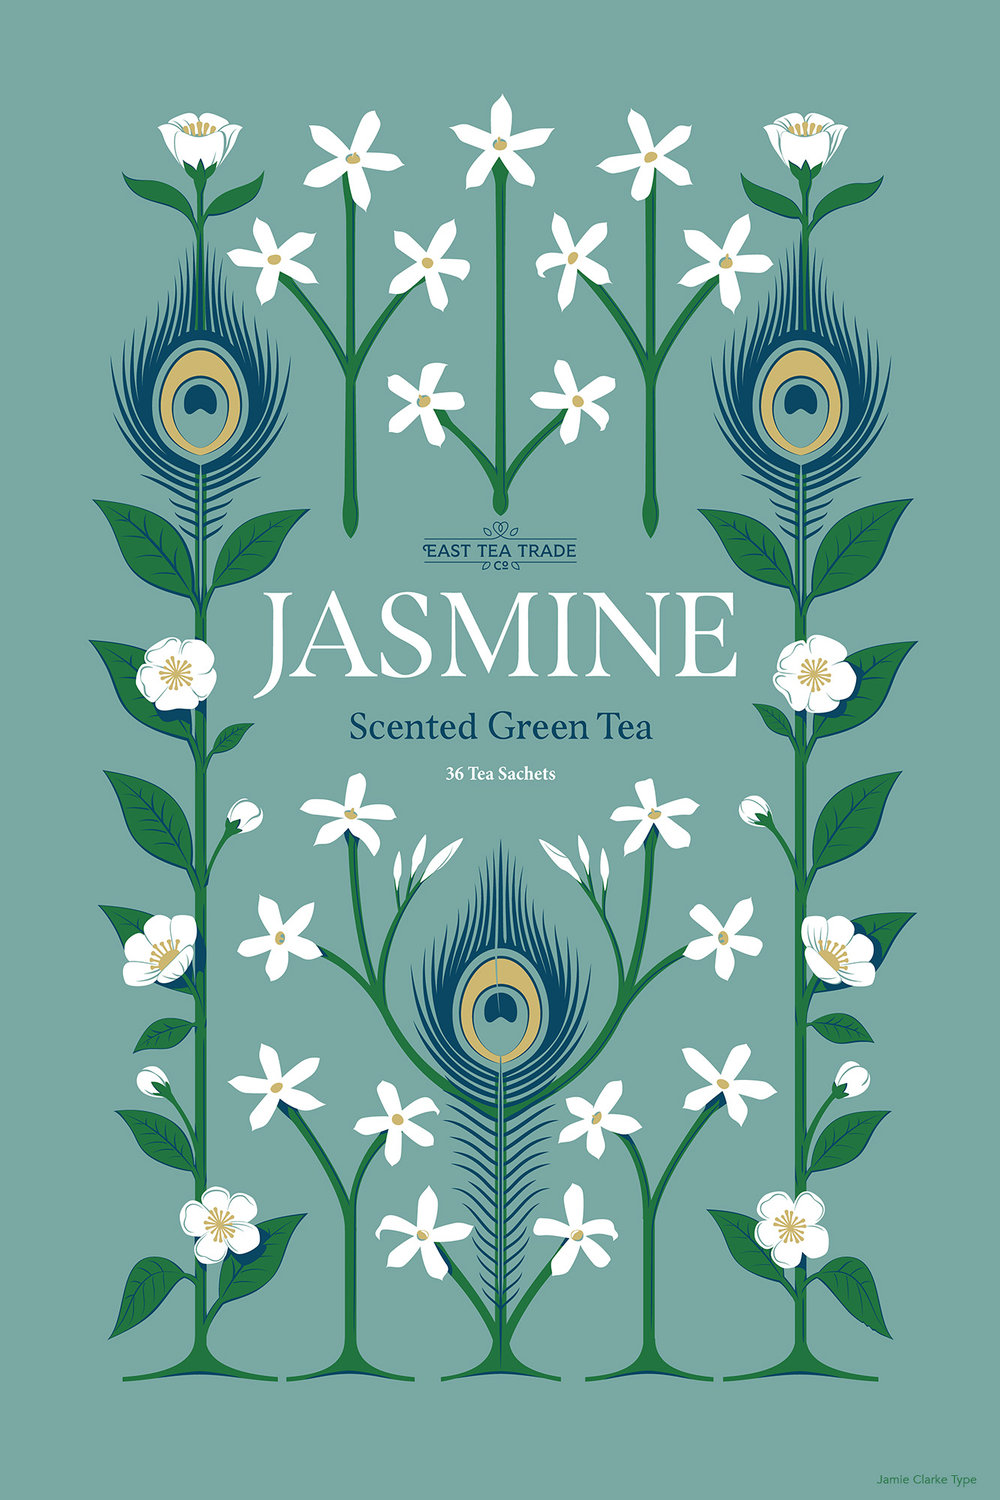 Jasmine Tea. In China, where the majority of Jasmine tea is produced, the peacock feather symbolises dignity and beauty.